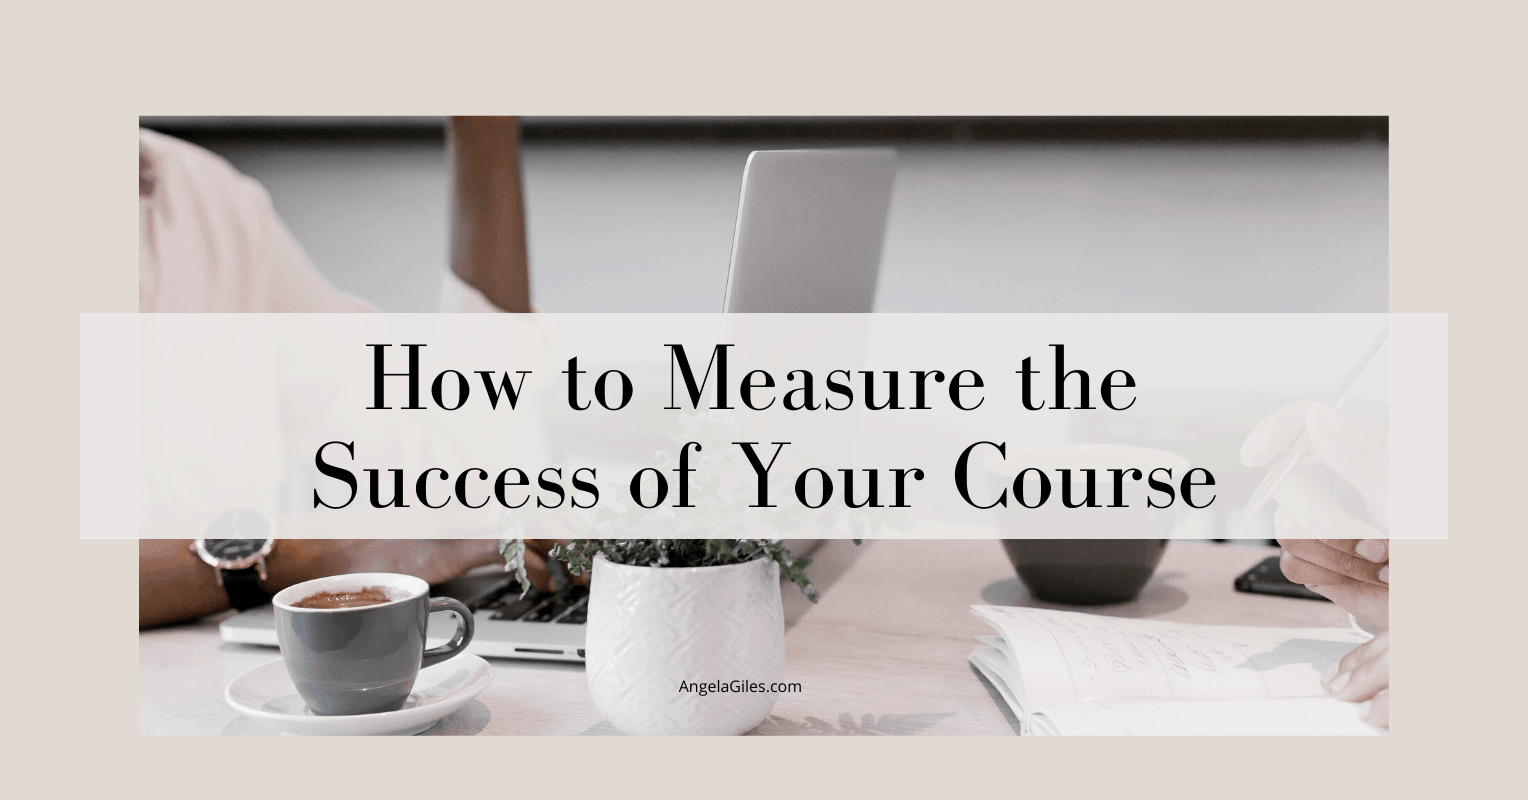 How to Measure the Success of Your Course